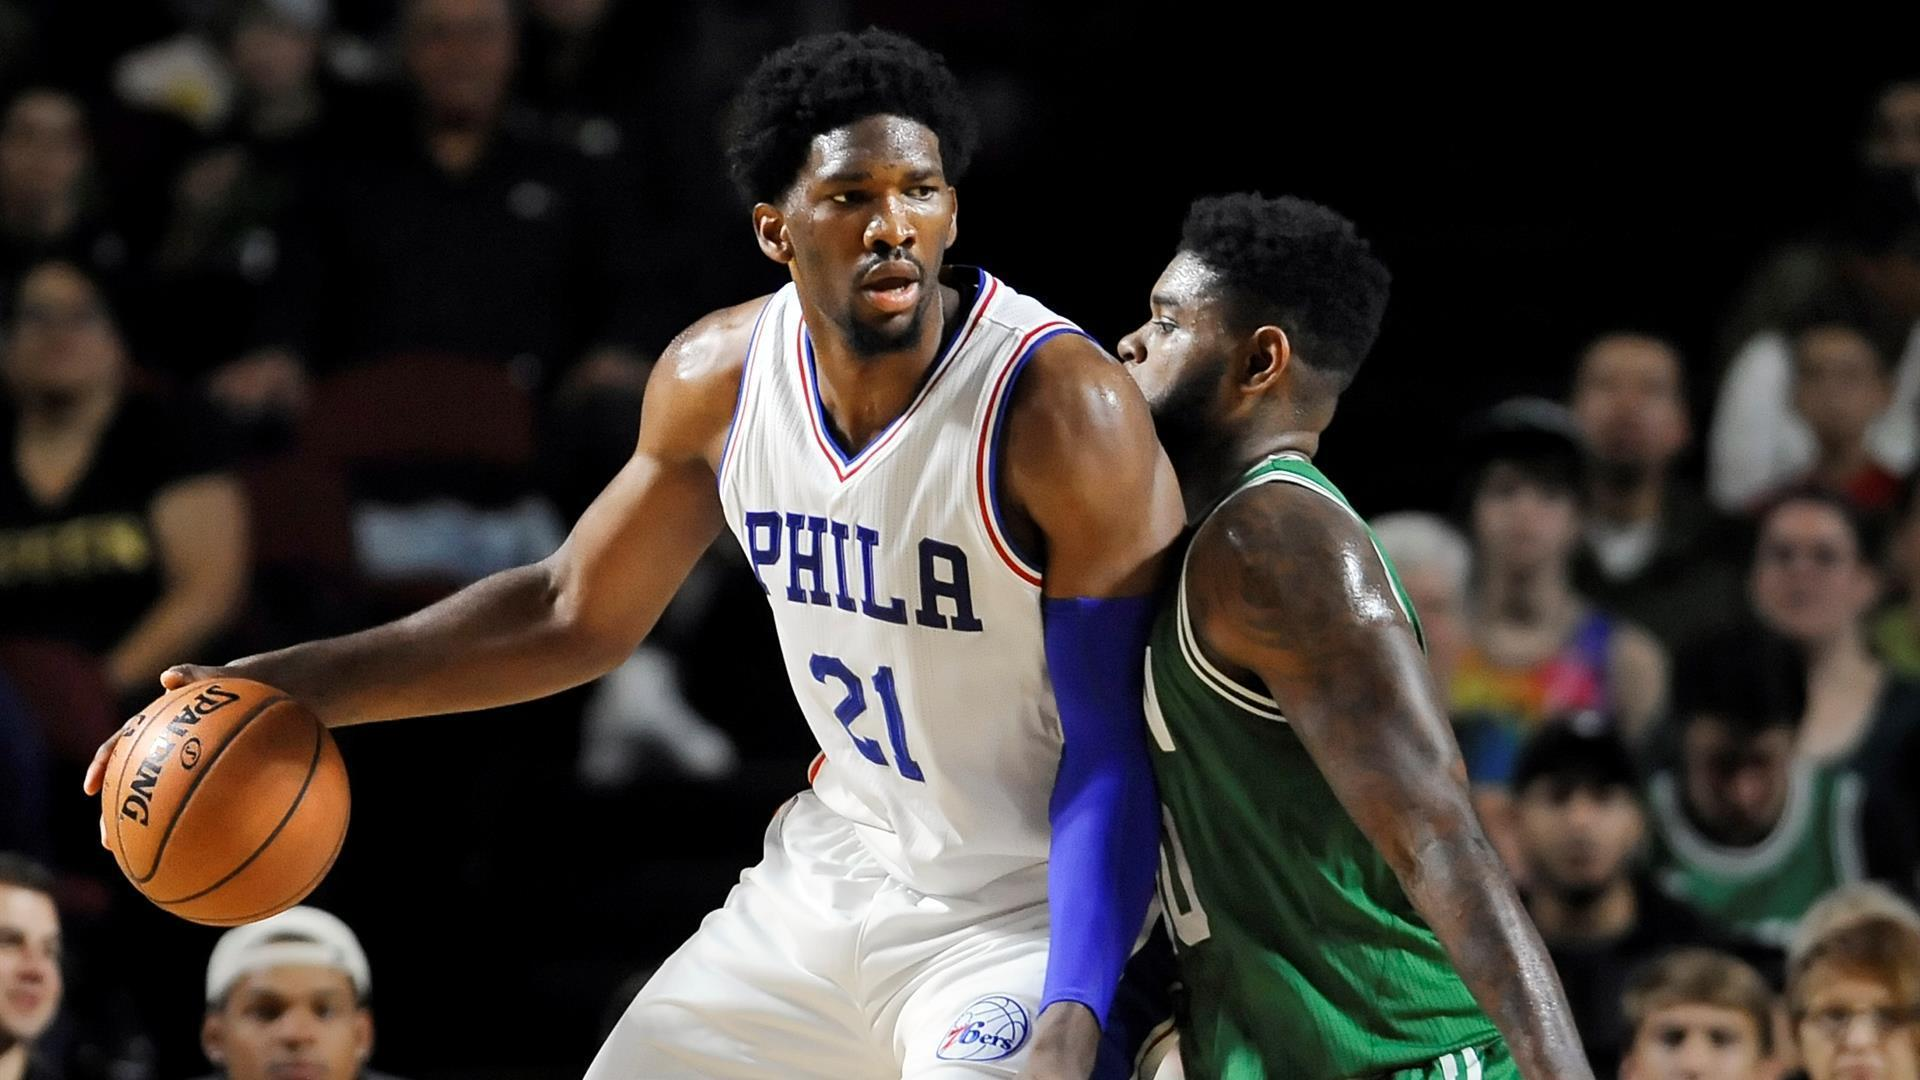 Amy Fadool: Joel Embiid displayed skill set of a top pick vs